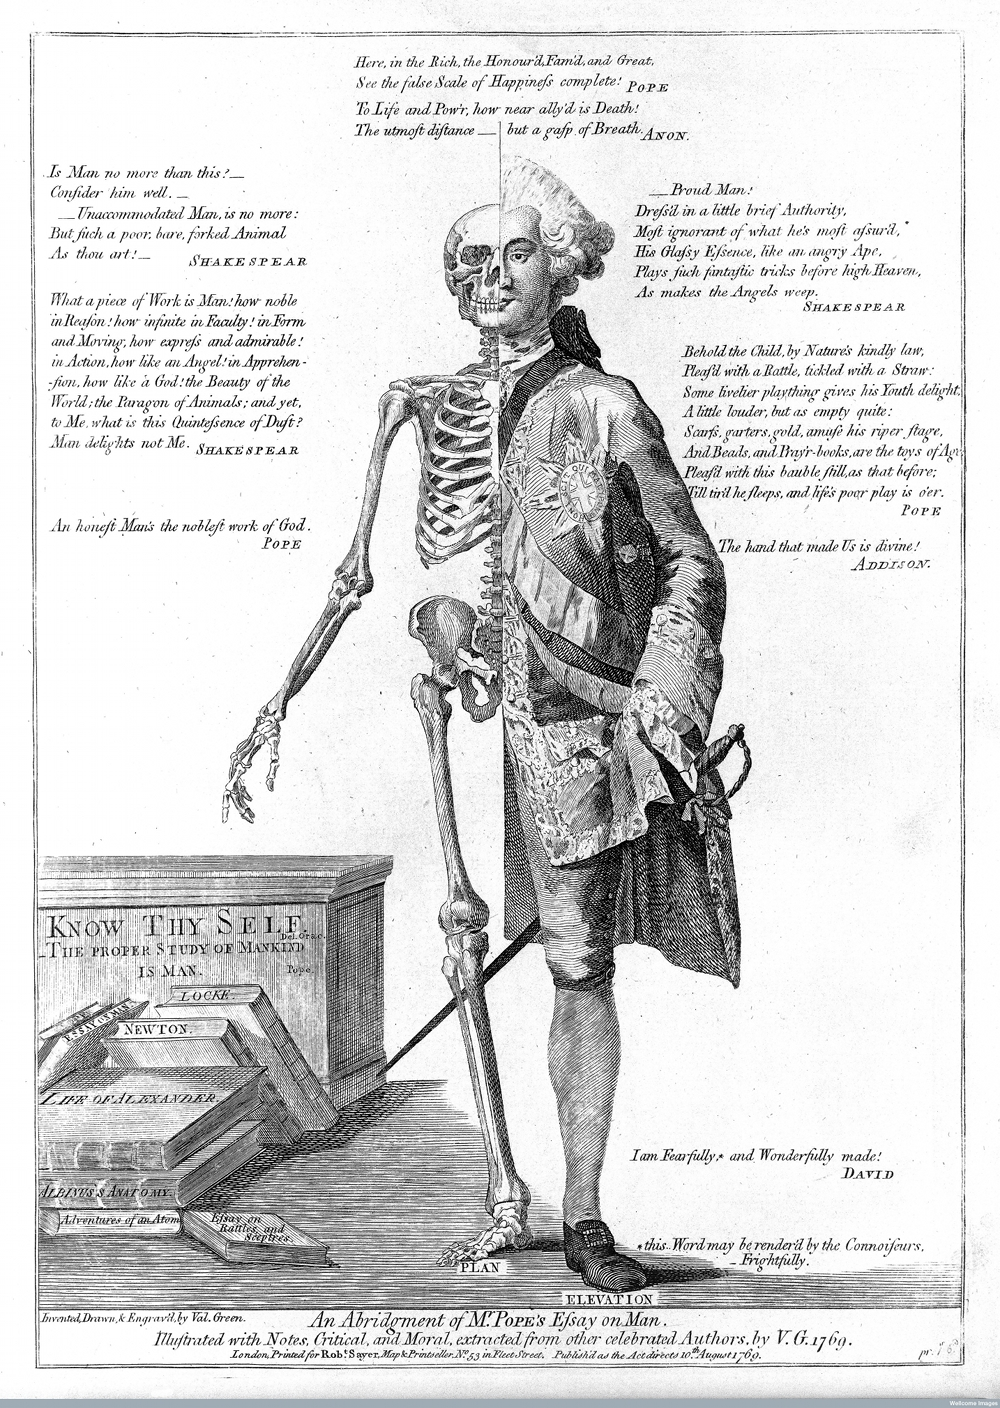 life and death contrasted ca the public review life and death contrasted ca 1770